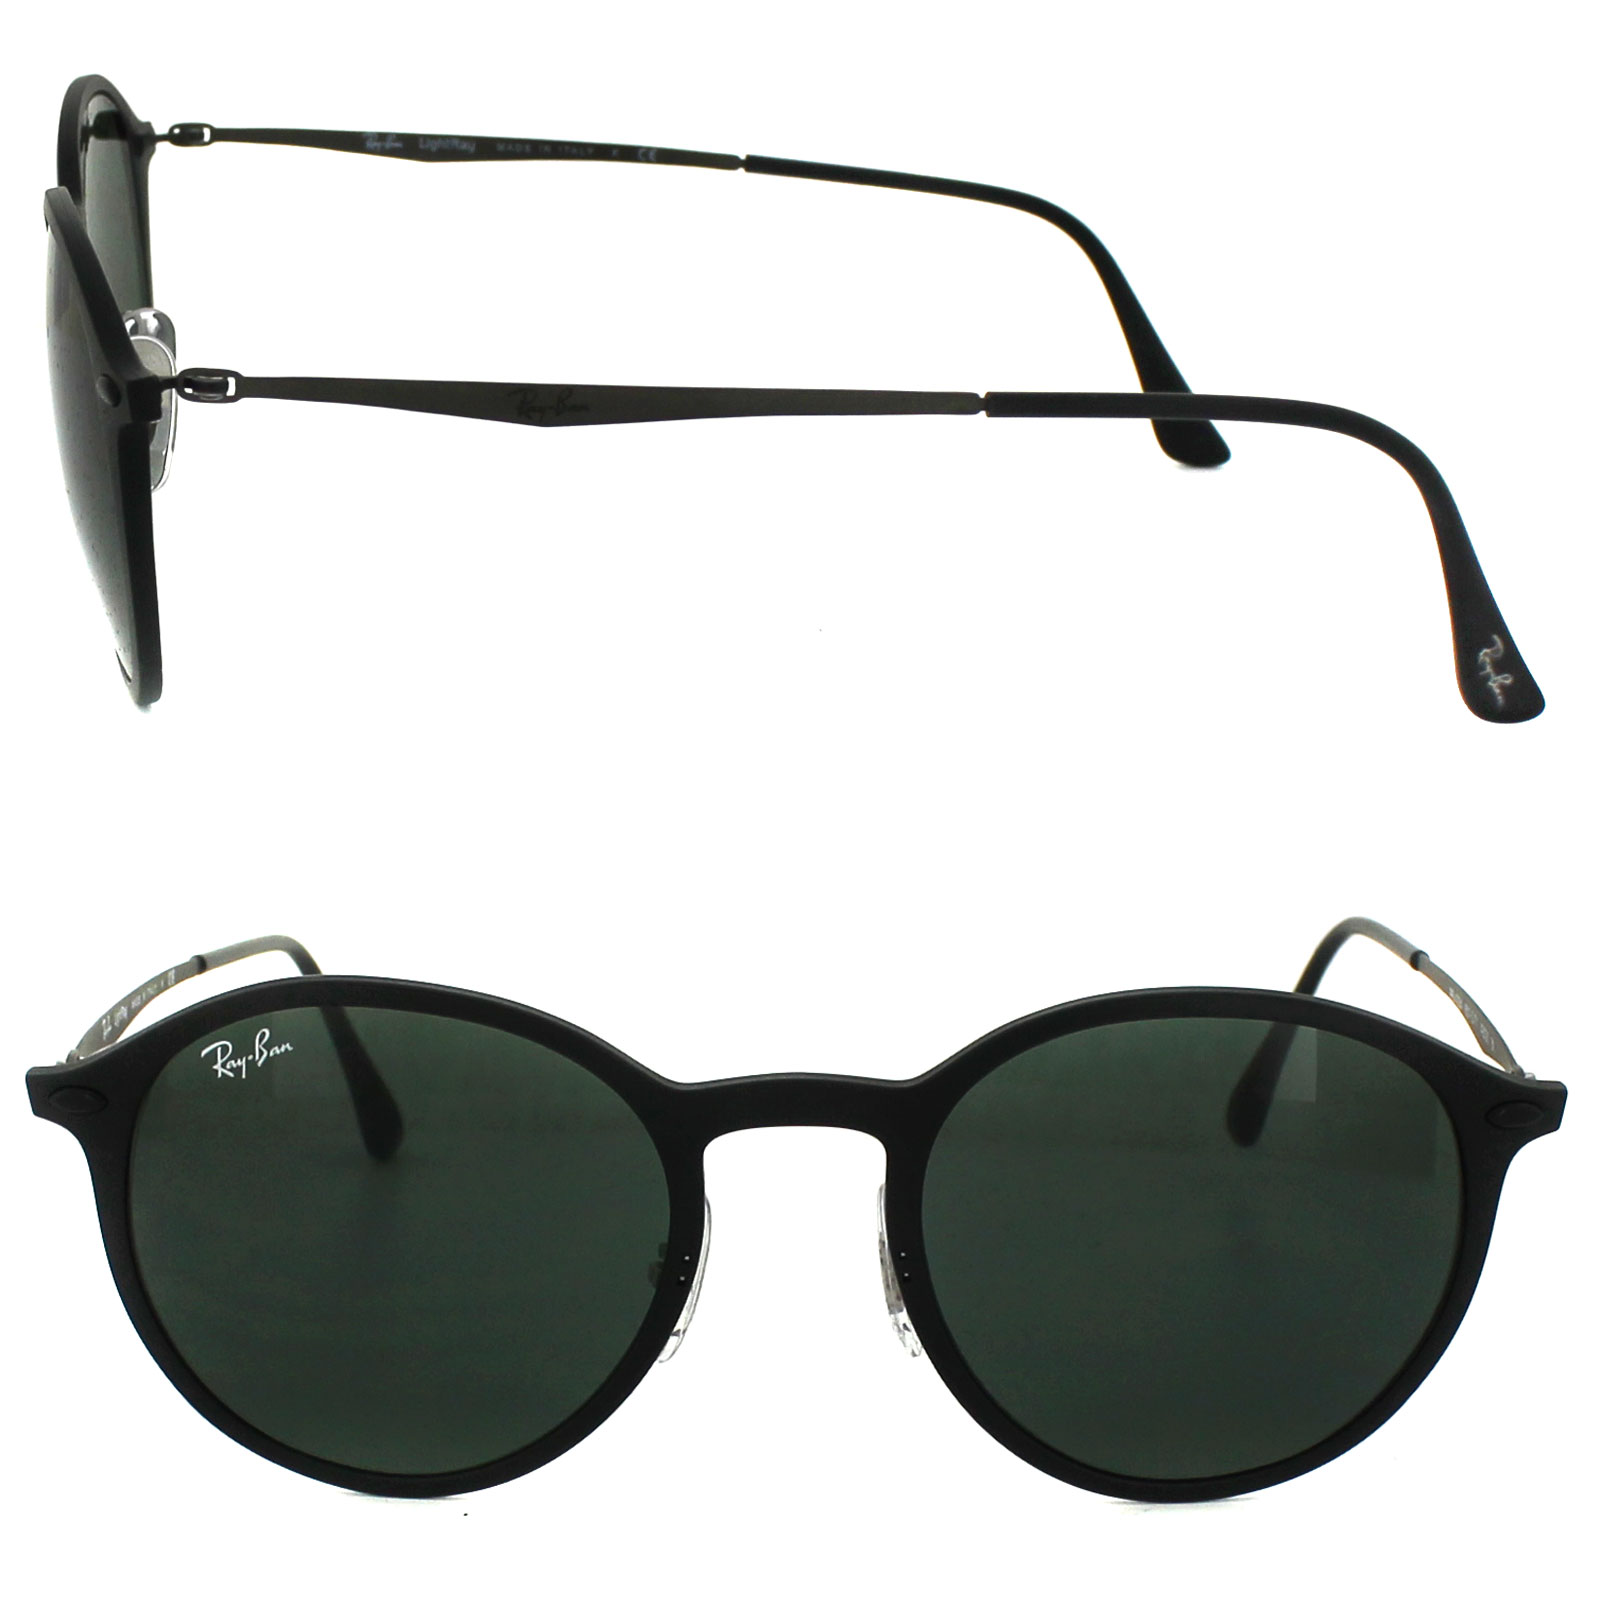 e6fc20ad372 Ray-Ban Sunglasses 4224 601S71 Black Green 8053672441161